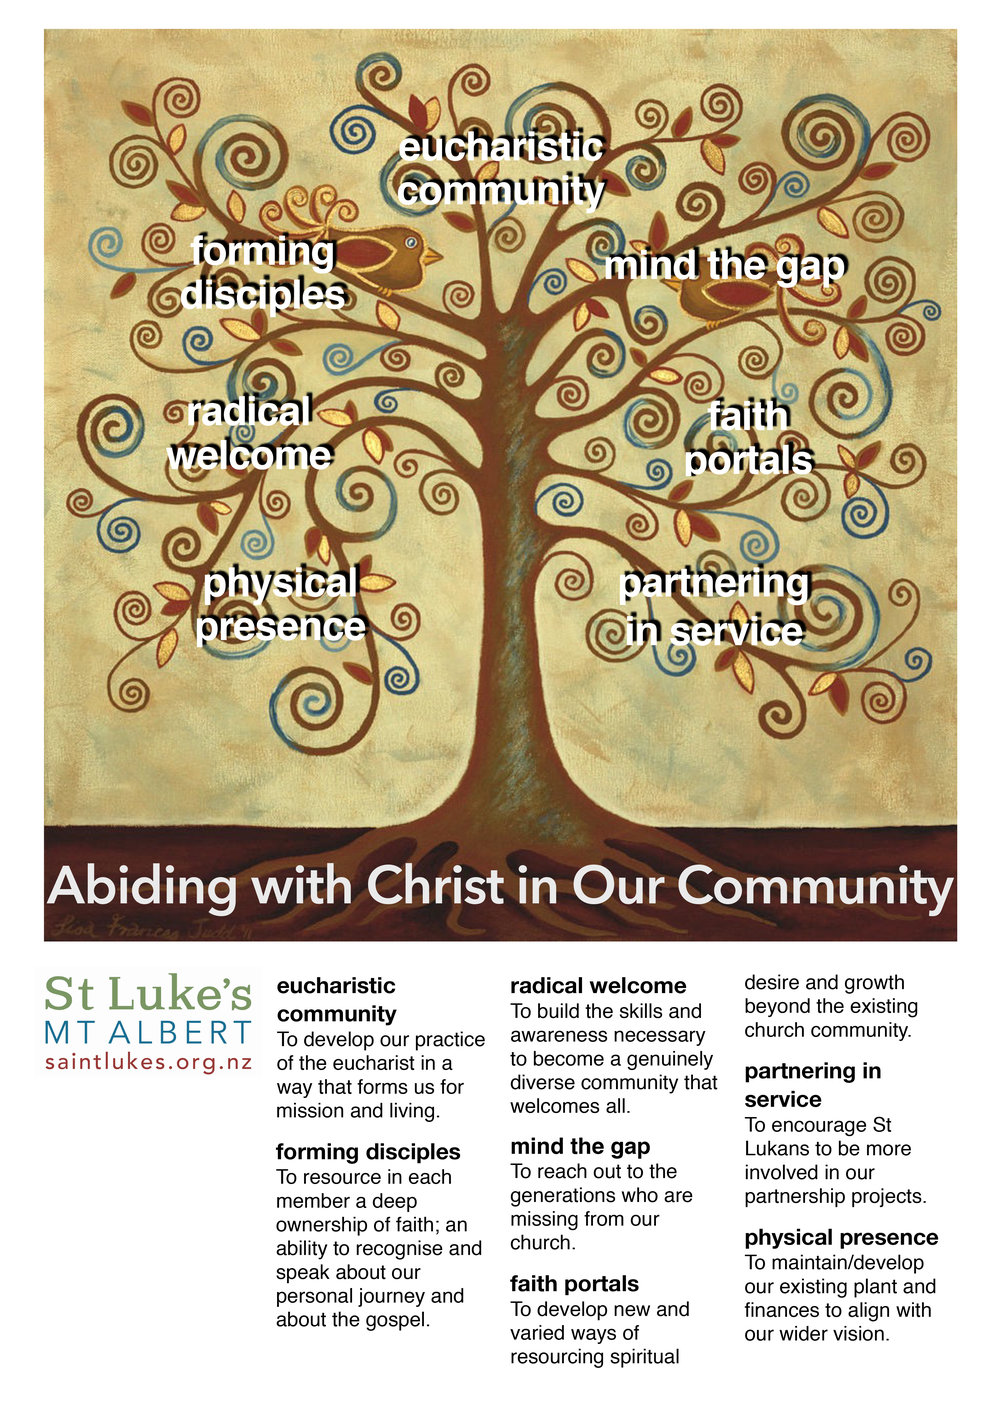 -     InvitationDuring 2015, Parish Council took time out to imagine St Luke's in five years' time - we asked ourselves what we wanted to be like in 2020. Through this time of reflection, we discerned the following seven objectives, which we believed would develop the life of our community and shape us to follow Christ together in Mt Albert, Kingsland and Pt Chevalier, into the future.Within these priority areas we developed practical steps many of which have borne fruit in our life in the last two years. We trust that further initiatives will emerge as we engage in this journey together. We commend the life of our community in Christ to your prayers and look forward to discovering how God will shape us together over the coming years.Our Parish Review, in March-April 2017 encouraged us to update and refocus the practical outworking of our vision priorities. Analysing the feedback helped us to identify new areas for continued development. We are grateful to everyone who offered feedback. There is much about our shared community life that is hugely positive, and for that we give thanks!Getting InvolvedThe following list is not intended to be an exhaustive list of everything we do at St Luke's.  Many things that aren't mentioned here will continue to happen and be valued in our day-to-day life, such as pastoral care and maintenance of our grounds and buildings. Those things are business as usual, though we might approach them in a different way.Our focus in this Vision process has been on what we do to extend our mission. Another way of thinking about this is that we are seeking to understand and join in God's mission, out in our local community. Maintaining our buildings and our finances are not ends in themselves; they are tools for mission. How do we share the love of Christ with those around us?